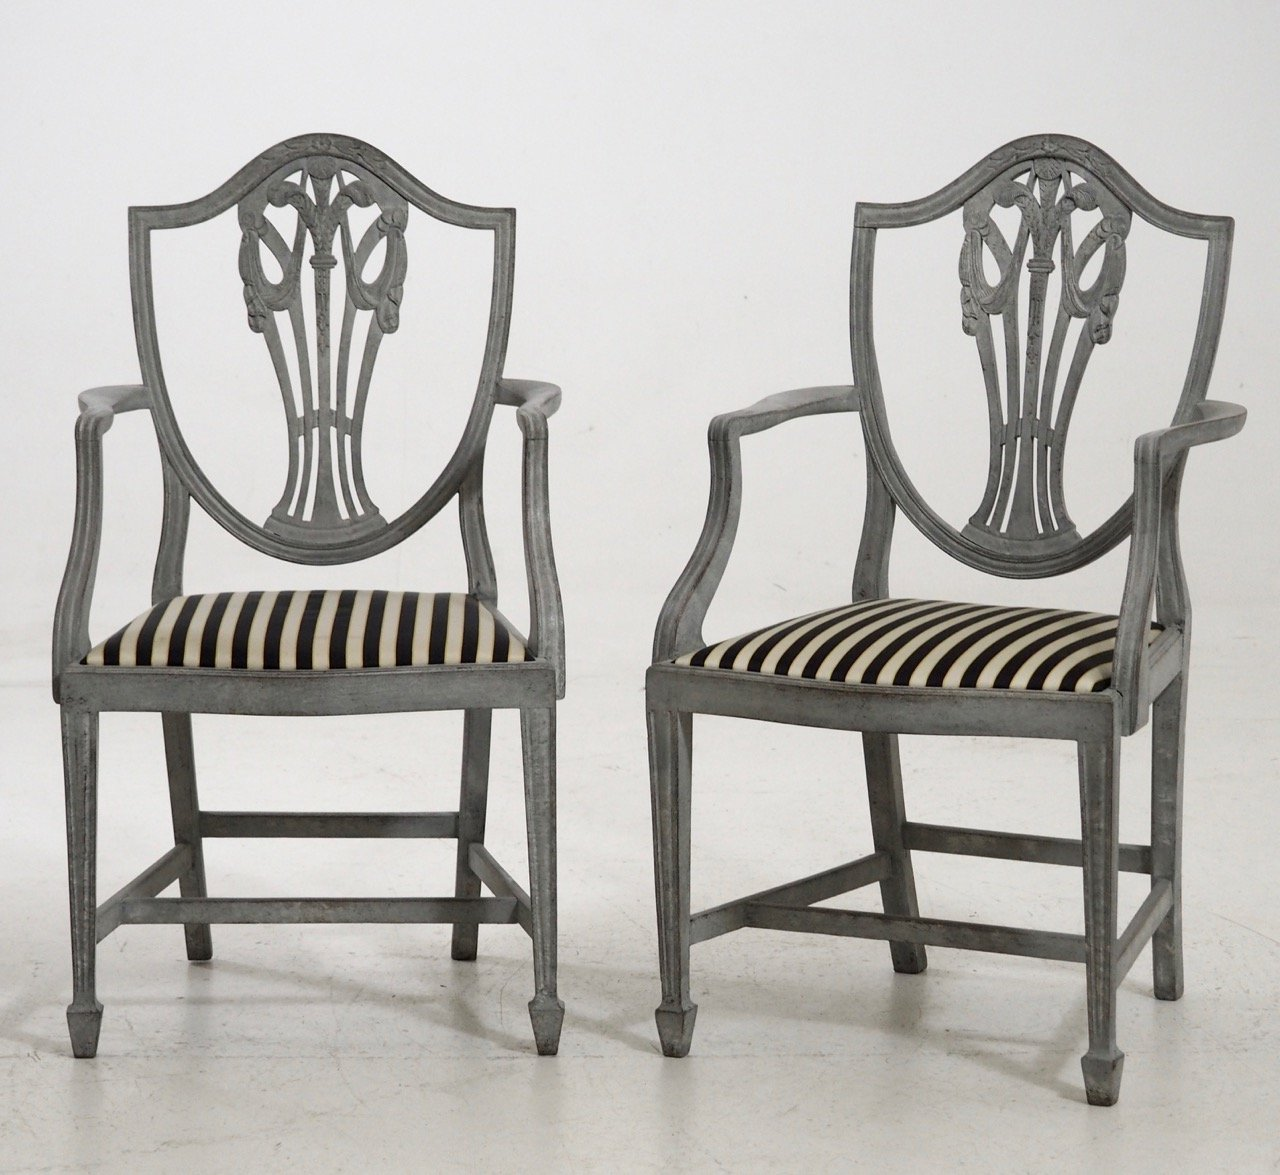 Attractive Antique Armchairs And Chairs Set With Fine Carvings